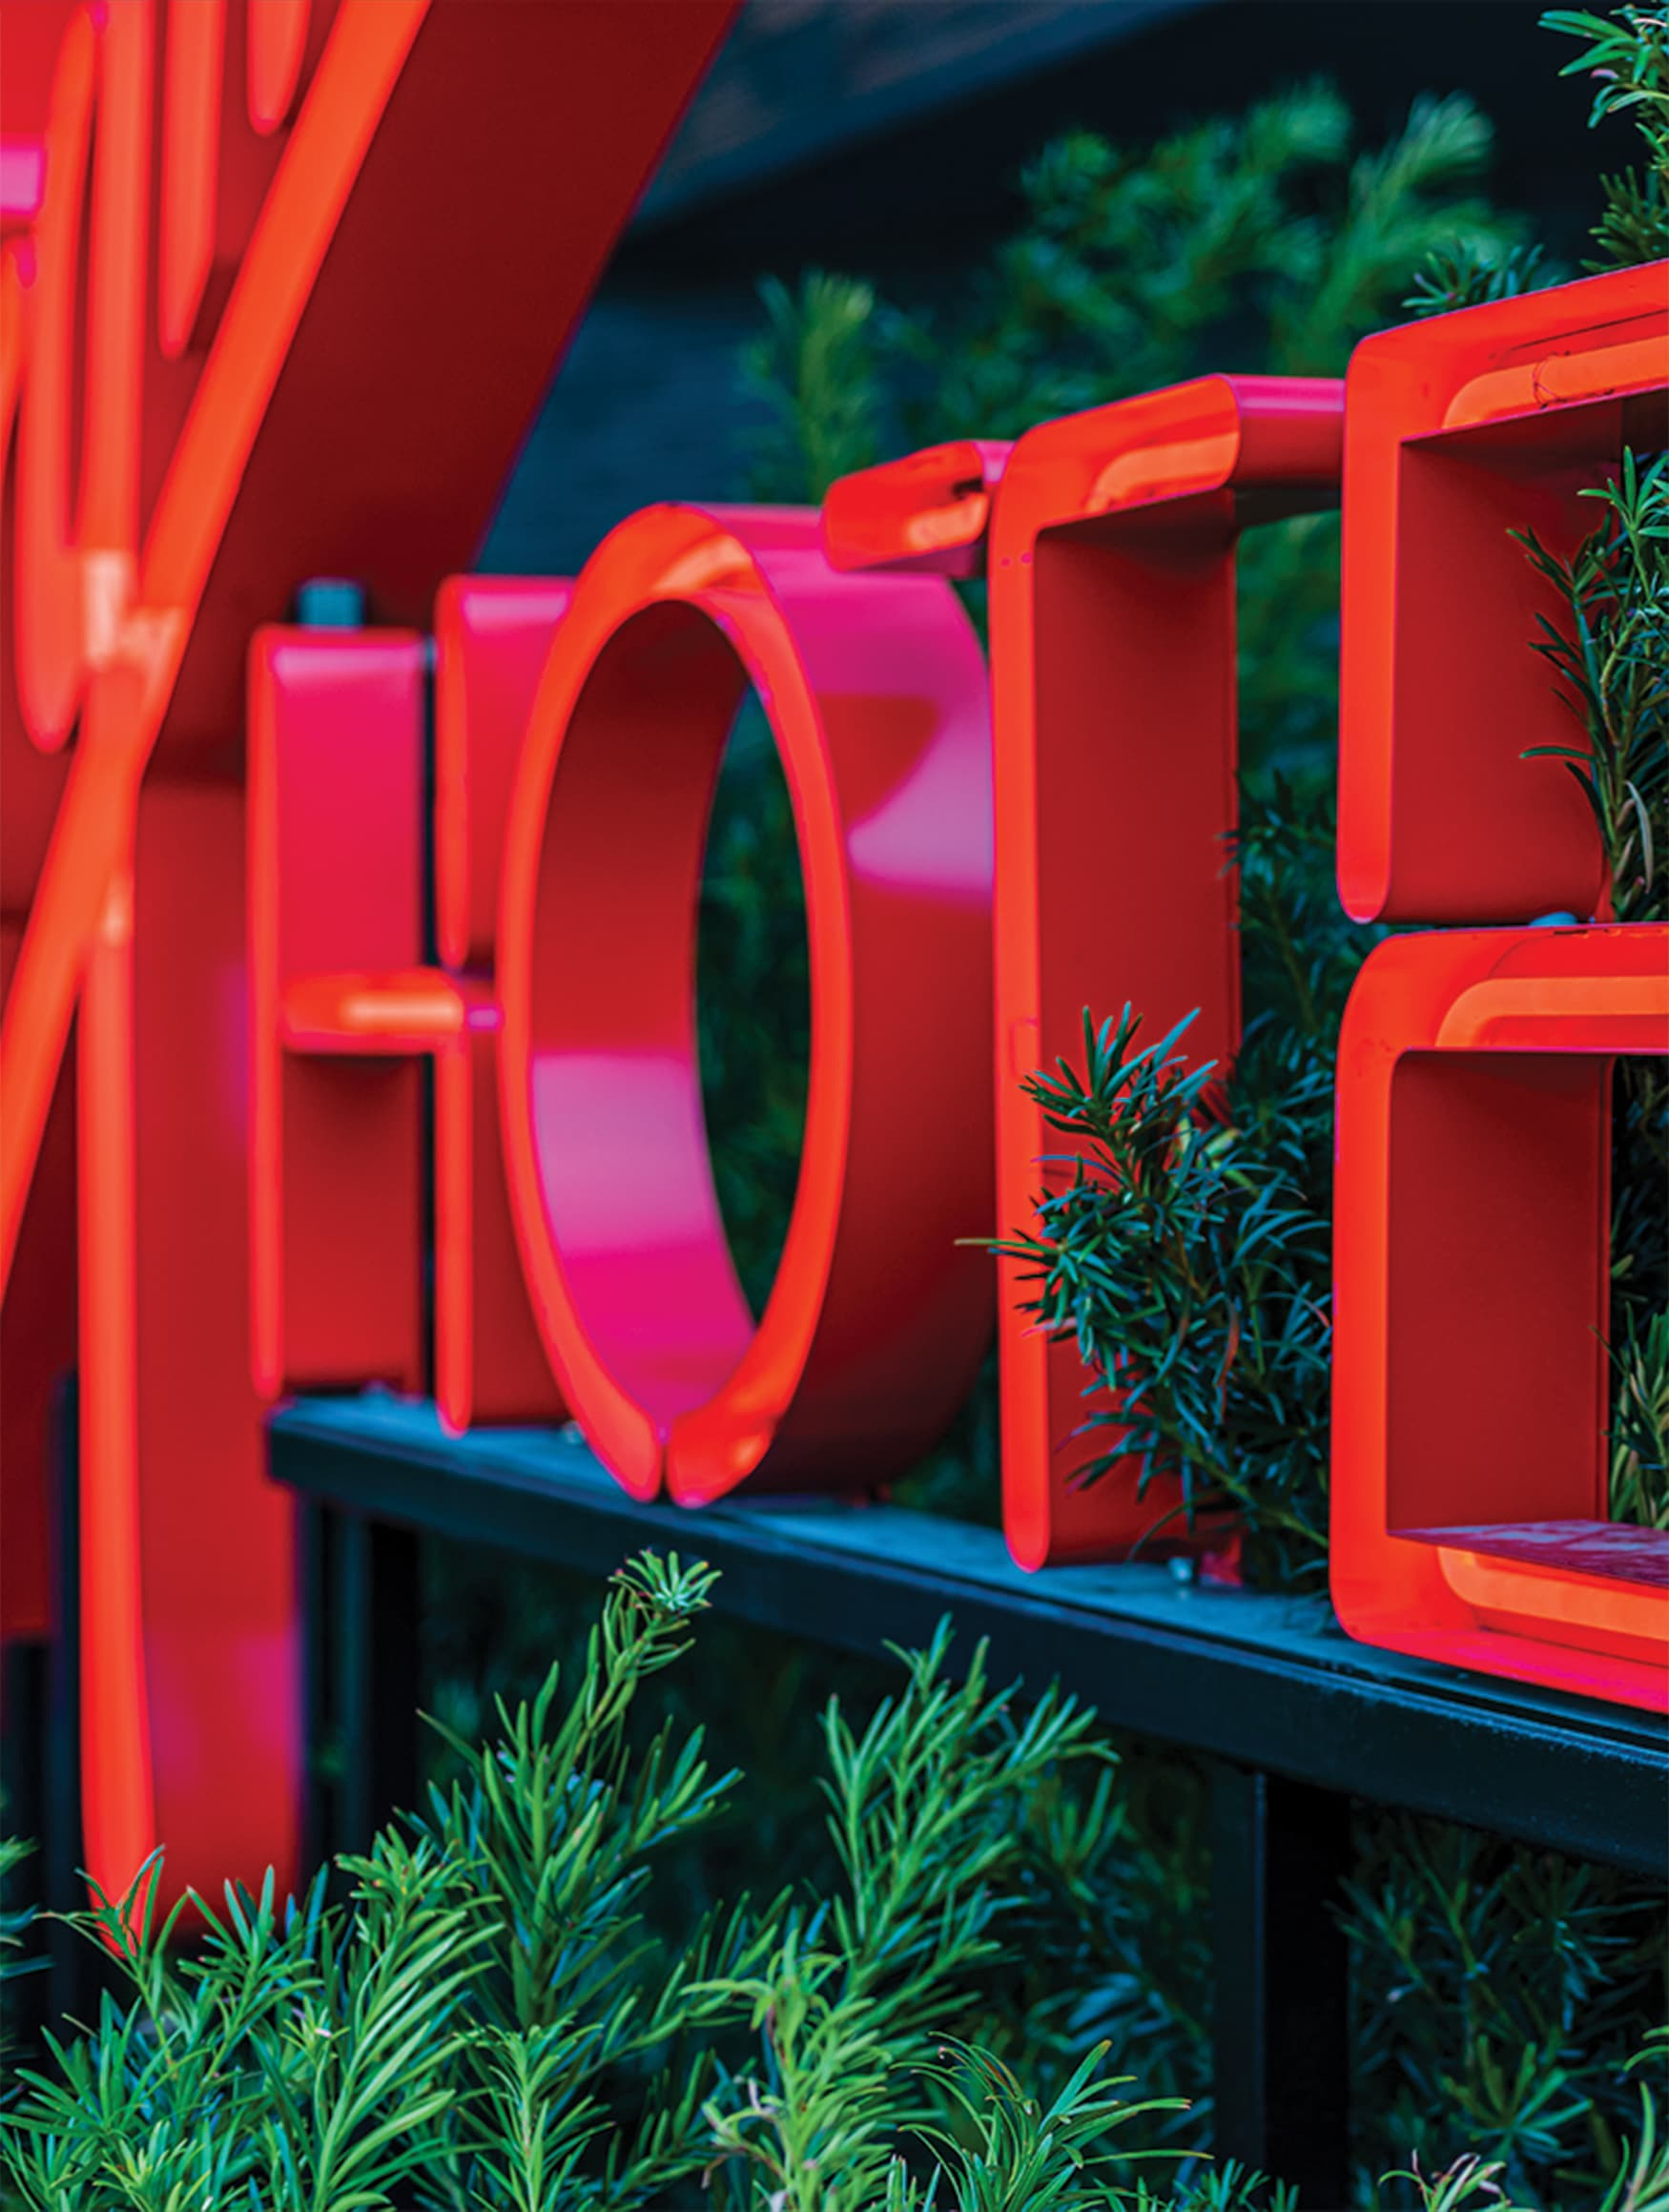 Virgin Hotels Open Face Channel Letter Hospitality Signage